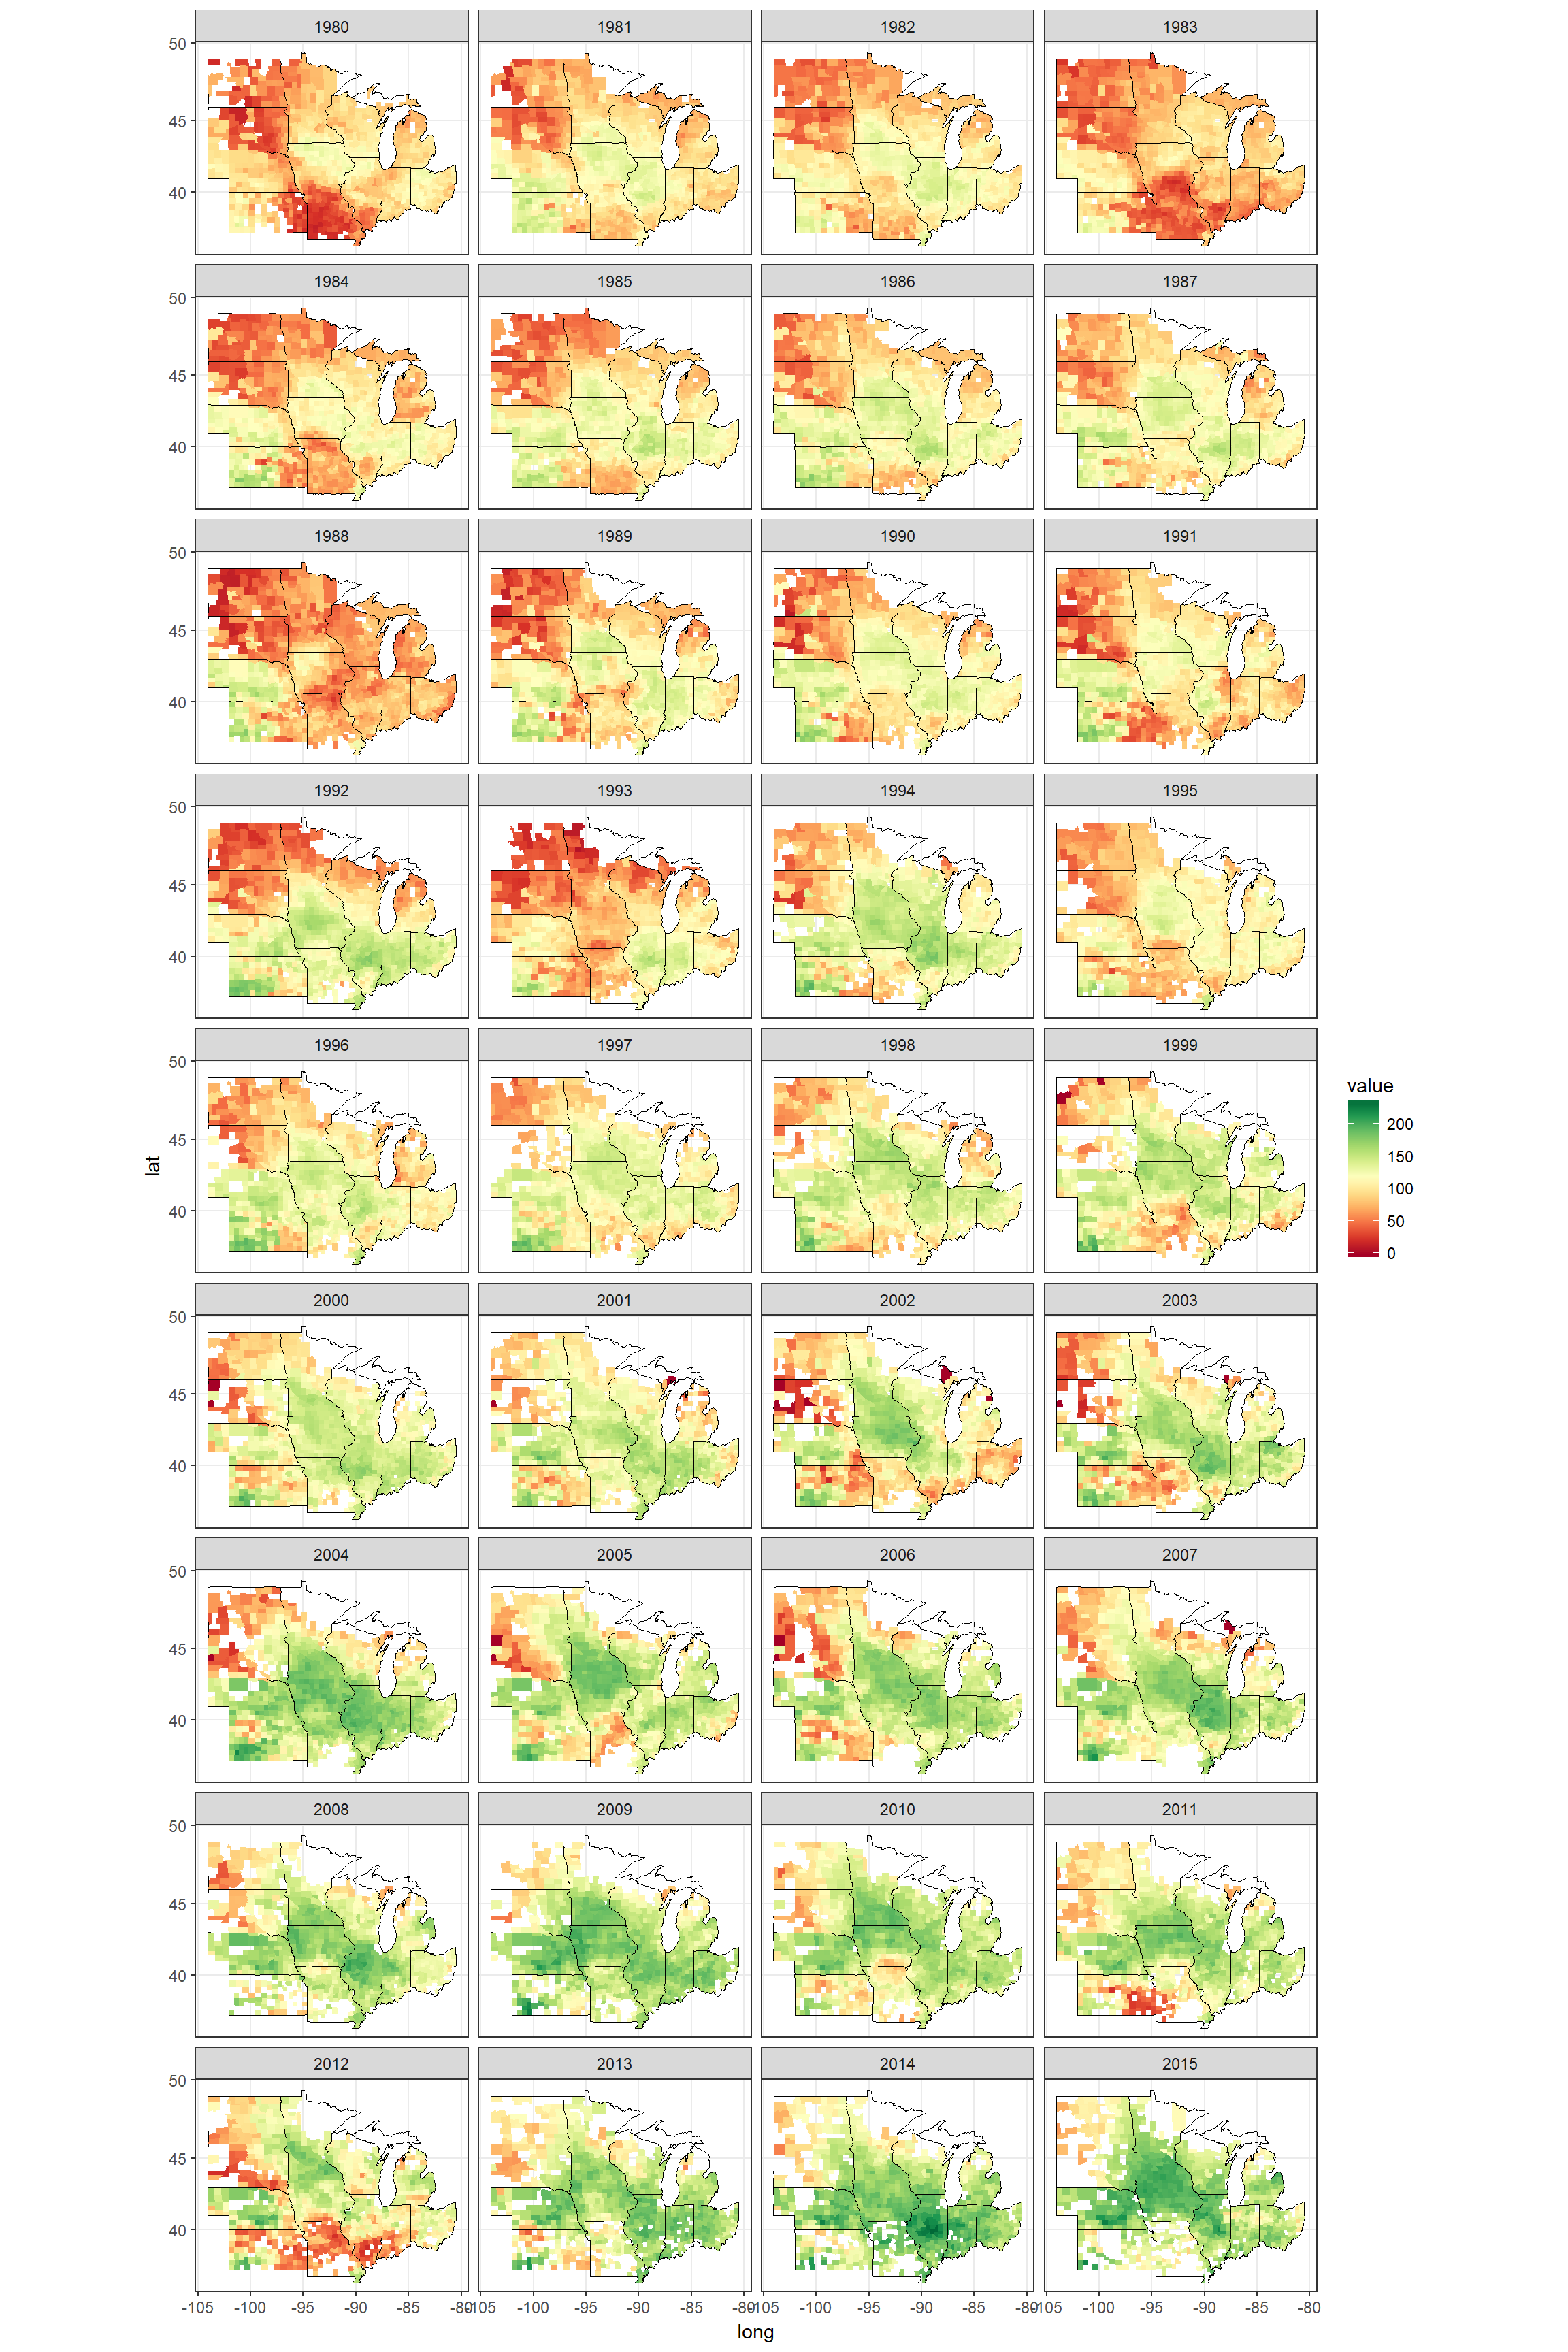 Corn yield of counties in the MidWest, between 1980 - 2015